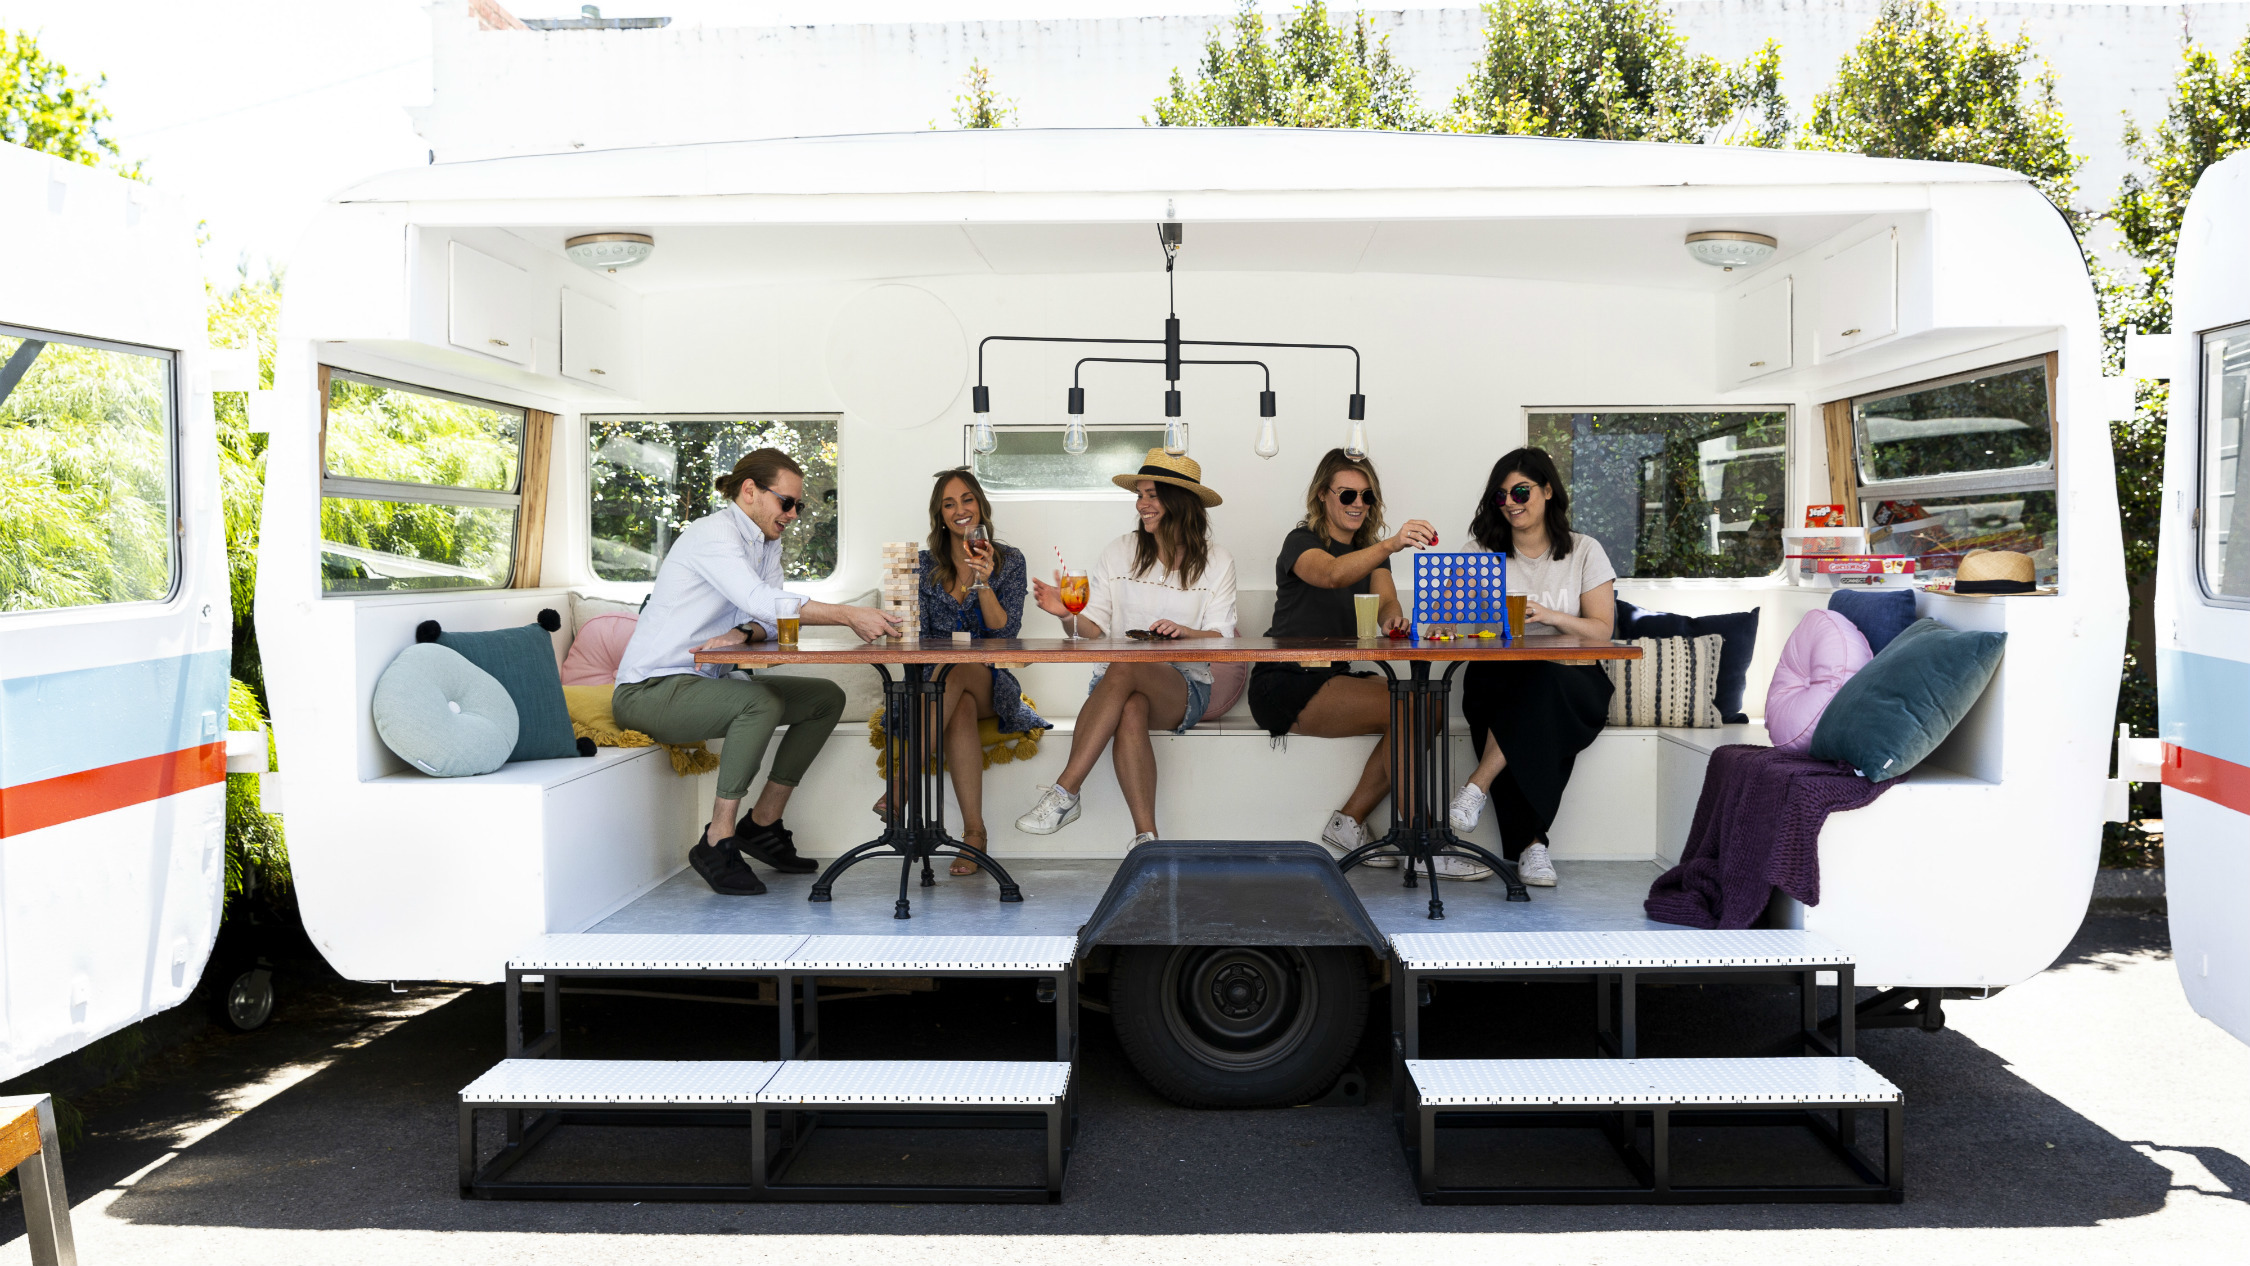 People sitting around a table inside a converted caravan